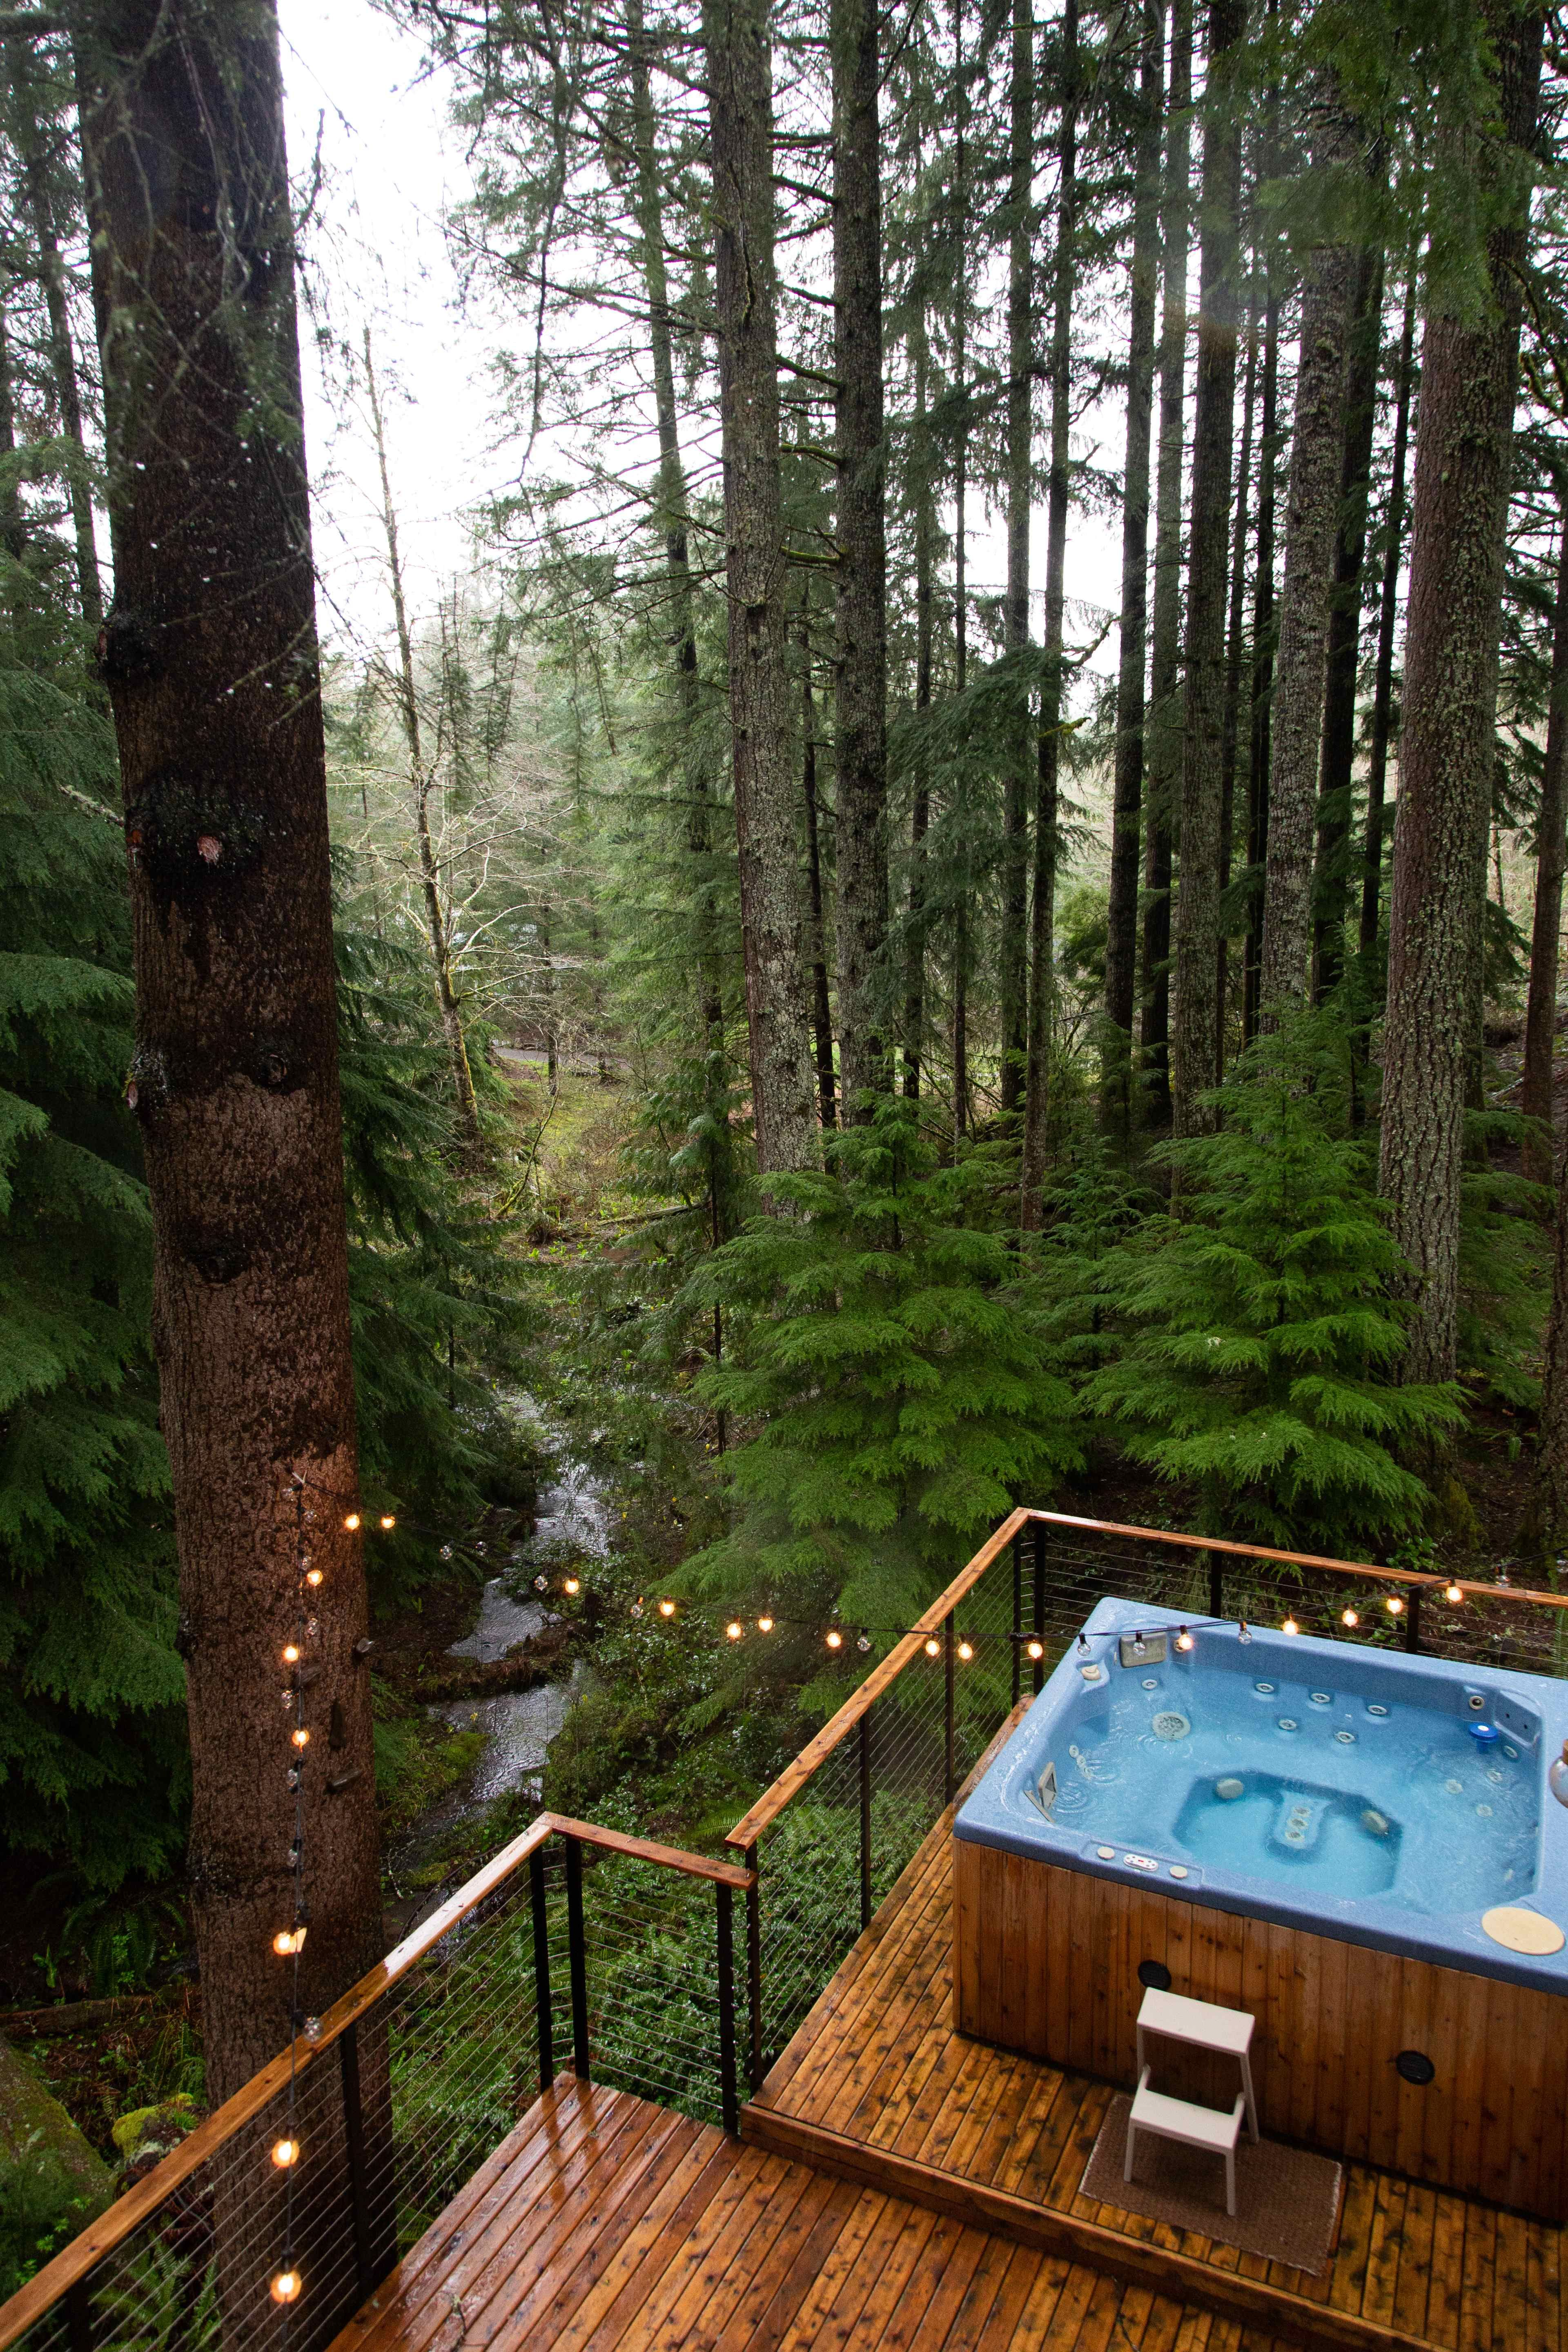 Surround Yourself With Nature at This Pacific Northwest Chalet | Hunker